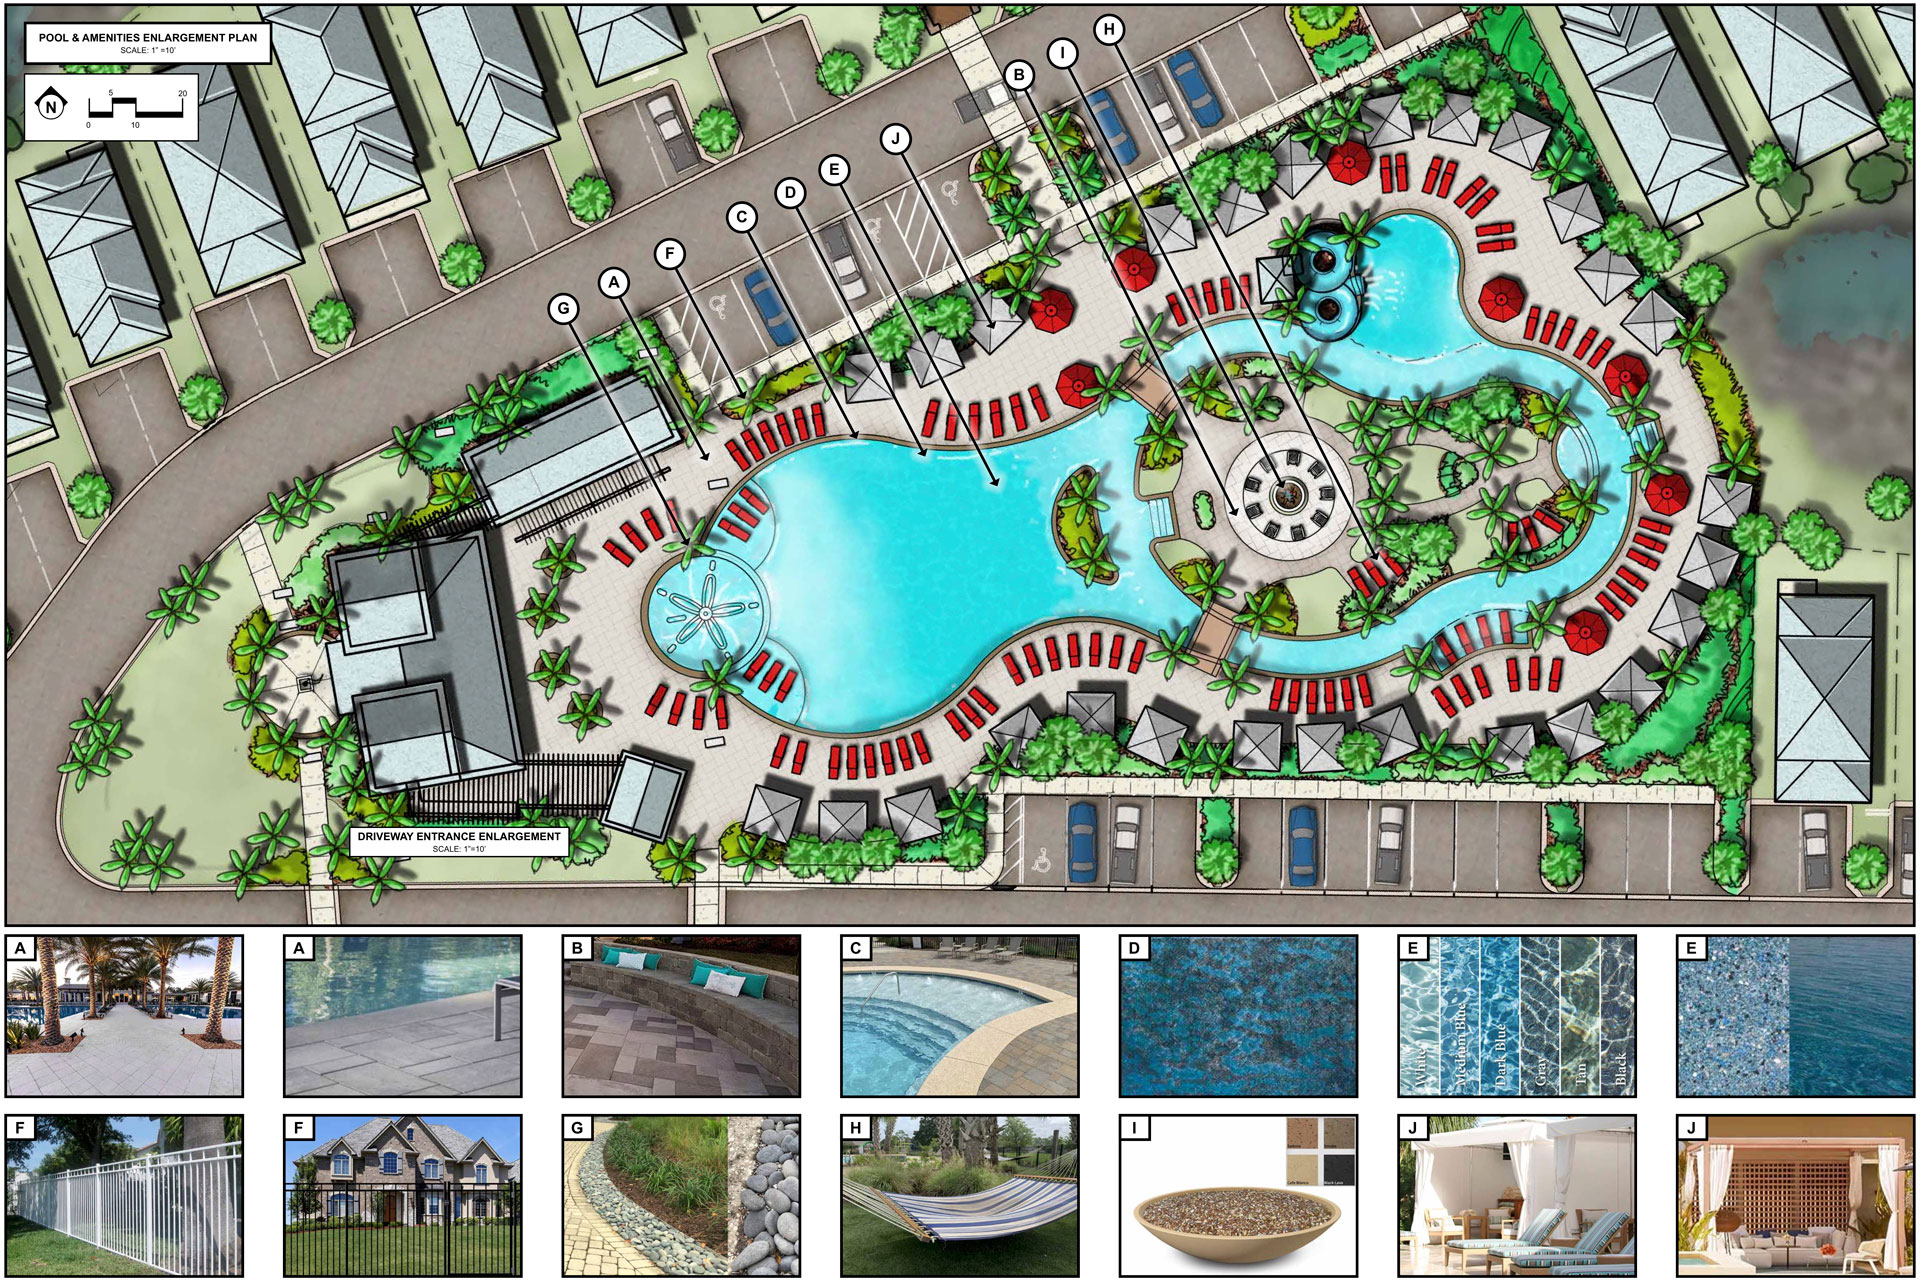 Pool-and-Amenities-Enlargement-Plan